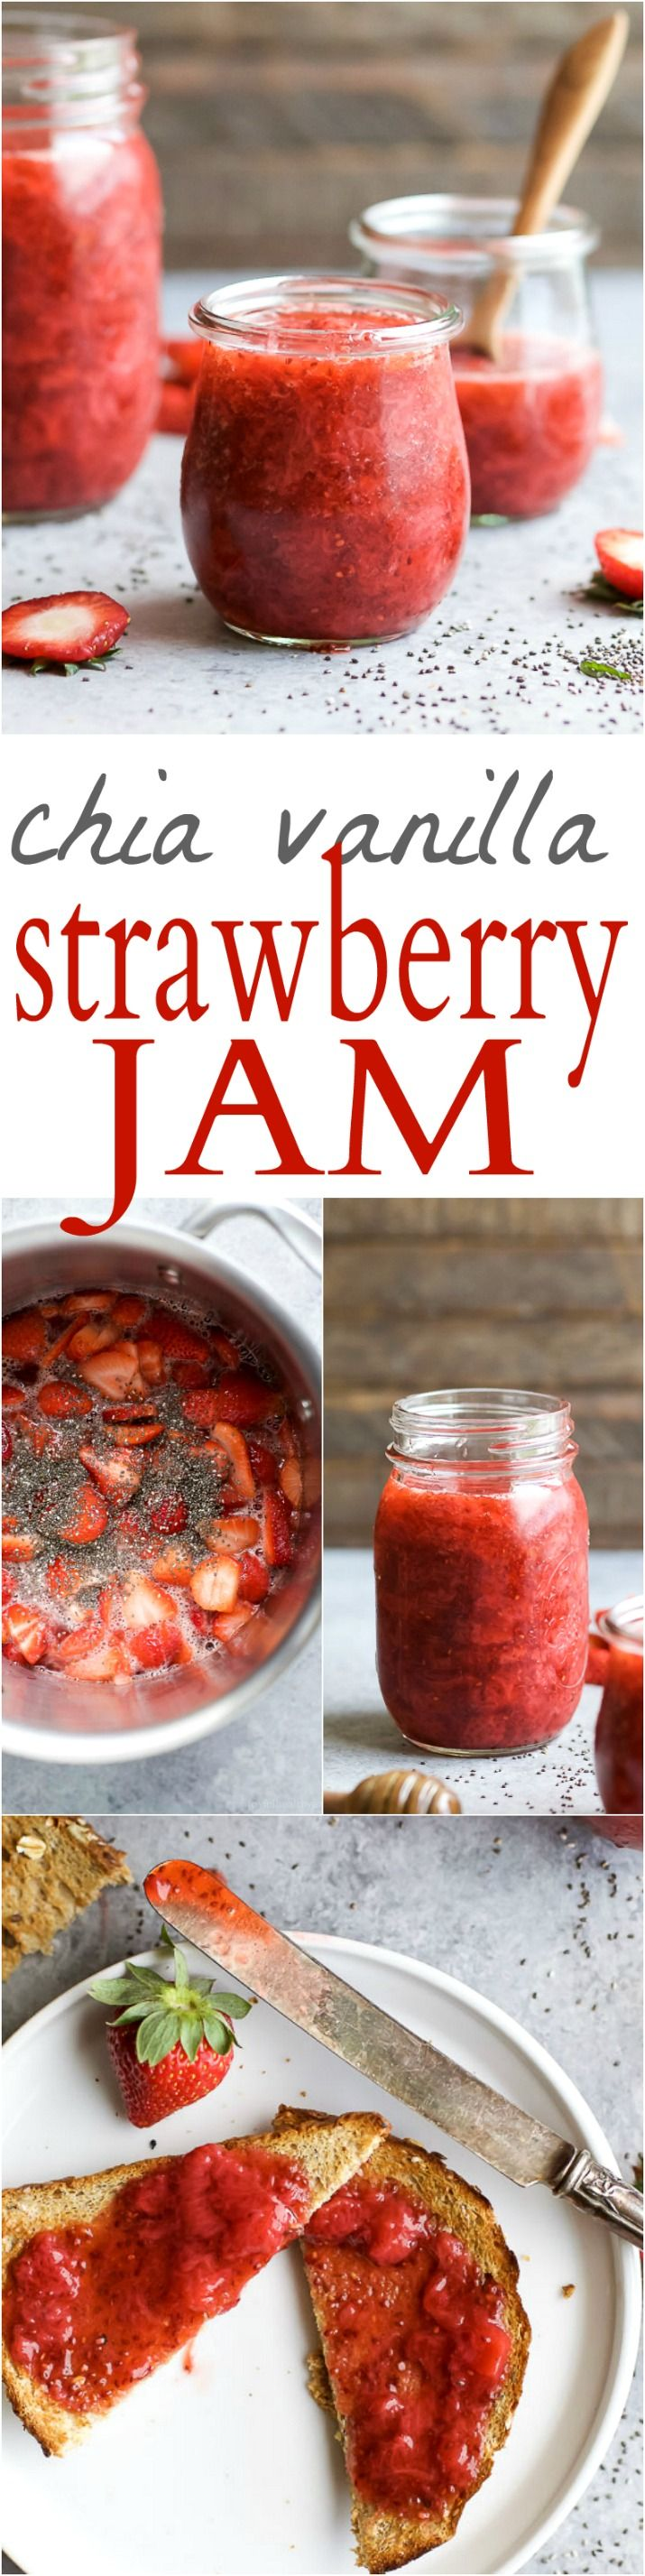 Quick & Easy CHIA VANILLA STRAWBERRY JAM naturally sweetened with honey. This Strawberry Jam Recipe you'll want to slather on everything, plus it's perfect for Strawberry Season! (no pectin) | joyfulhealthyeats.com | gluten free | paleo friendly